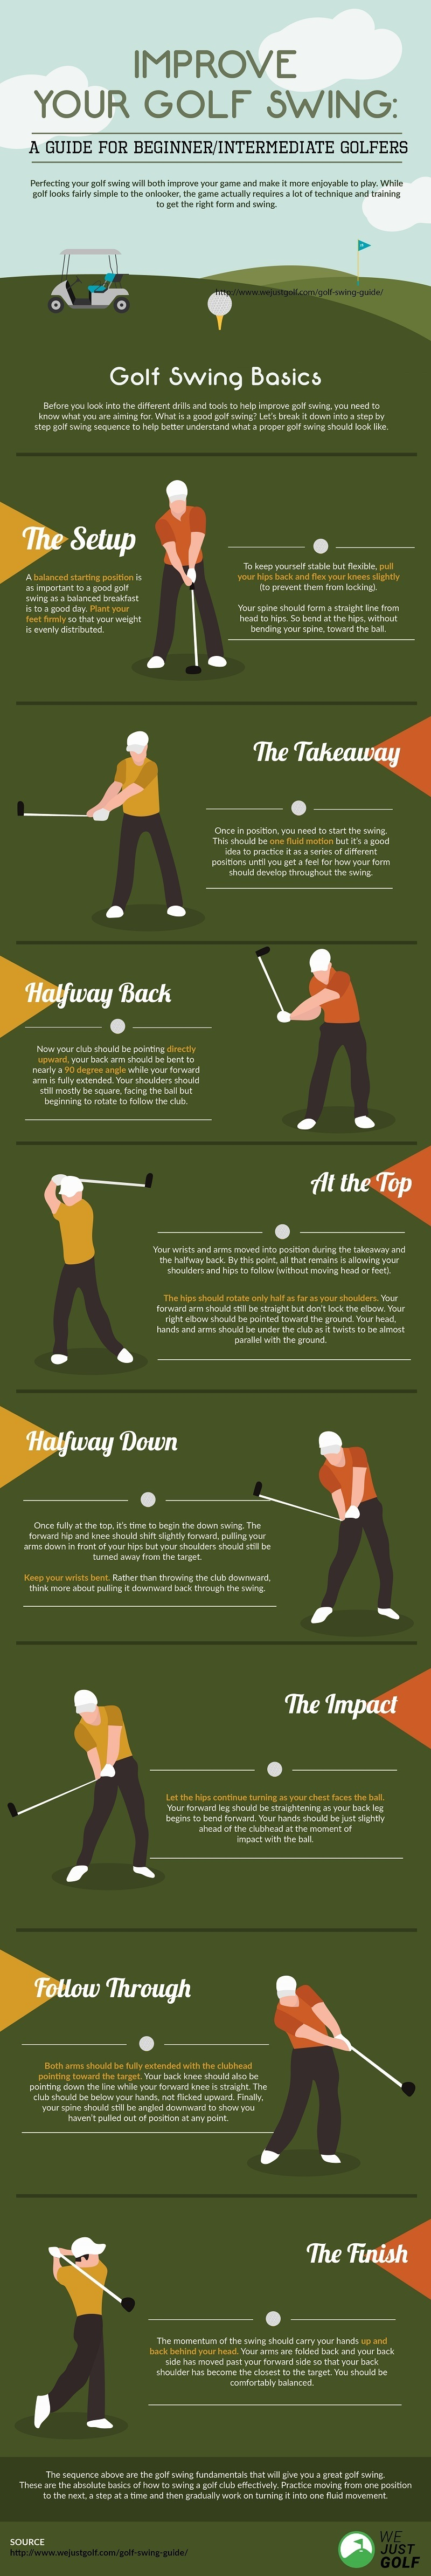 Guide to Improving Your Golf Swing | WeJustGolf com